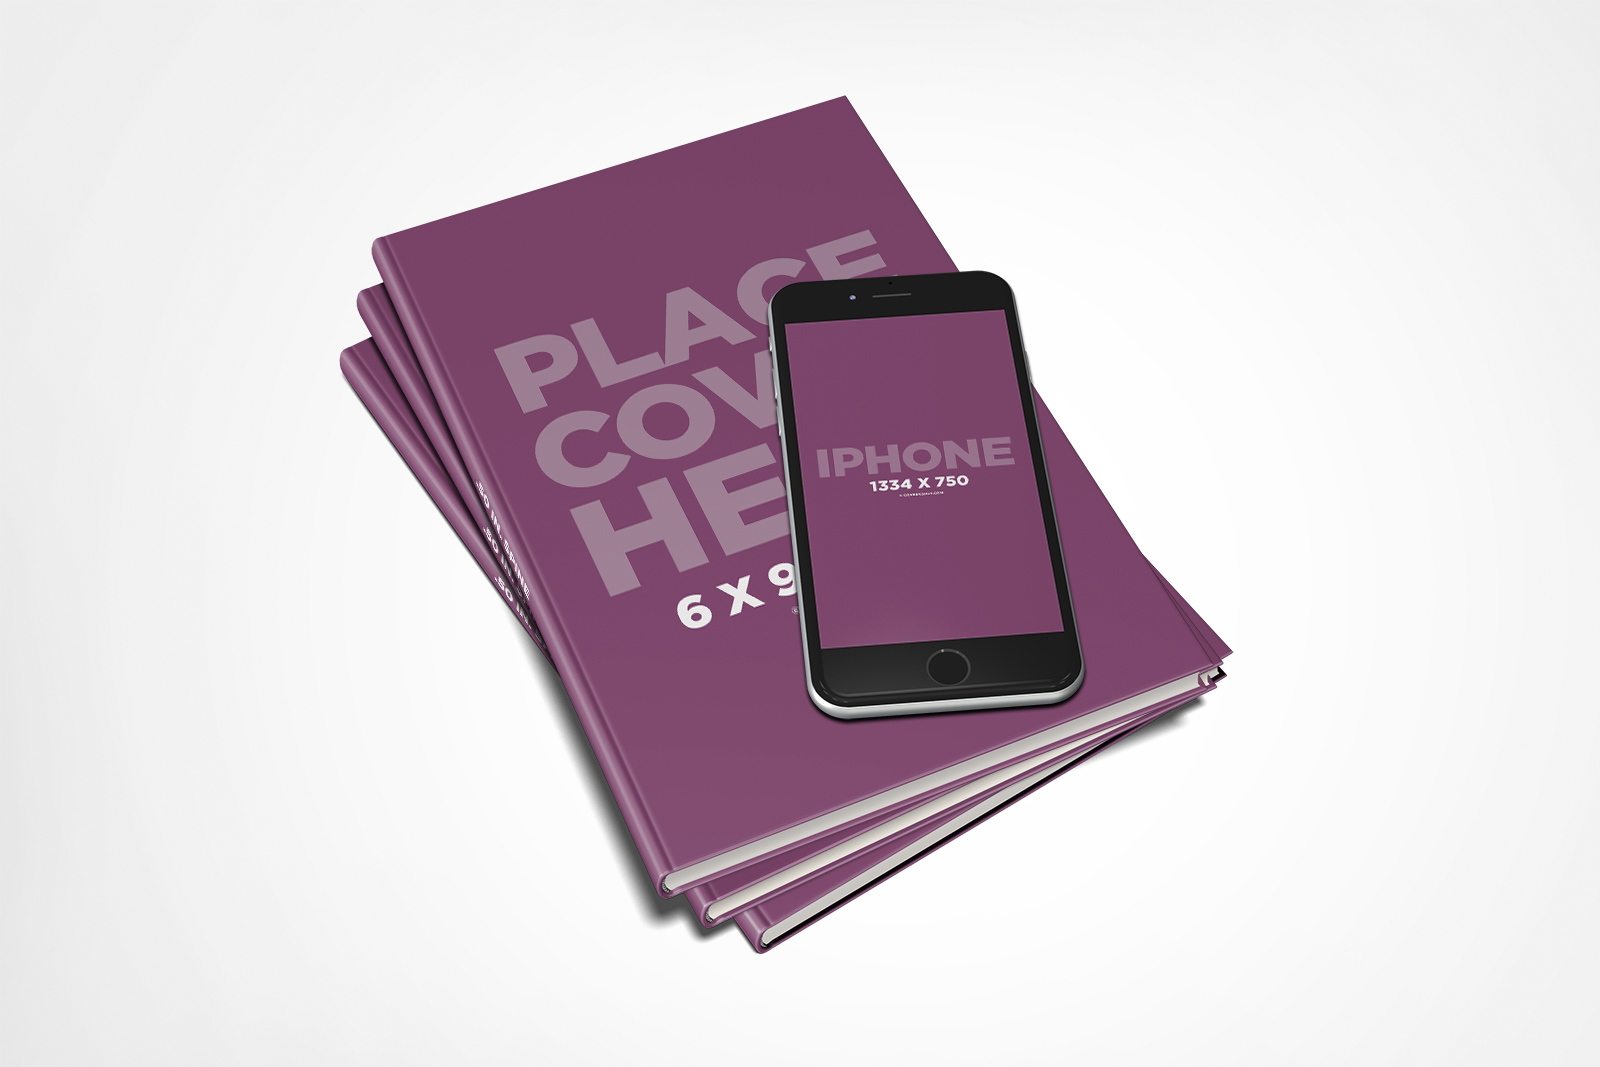 Hardcover Book Stack iPhone 6 Mockup